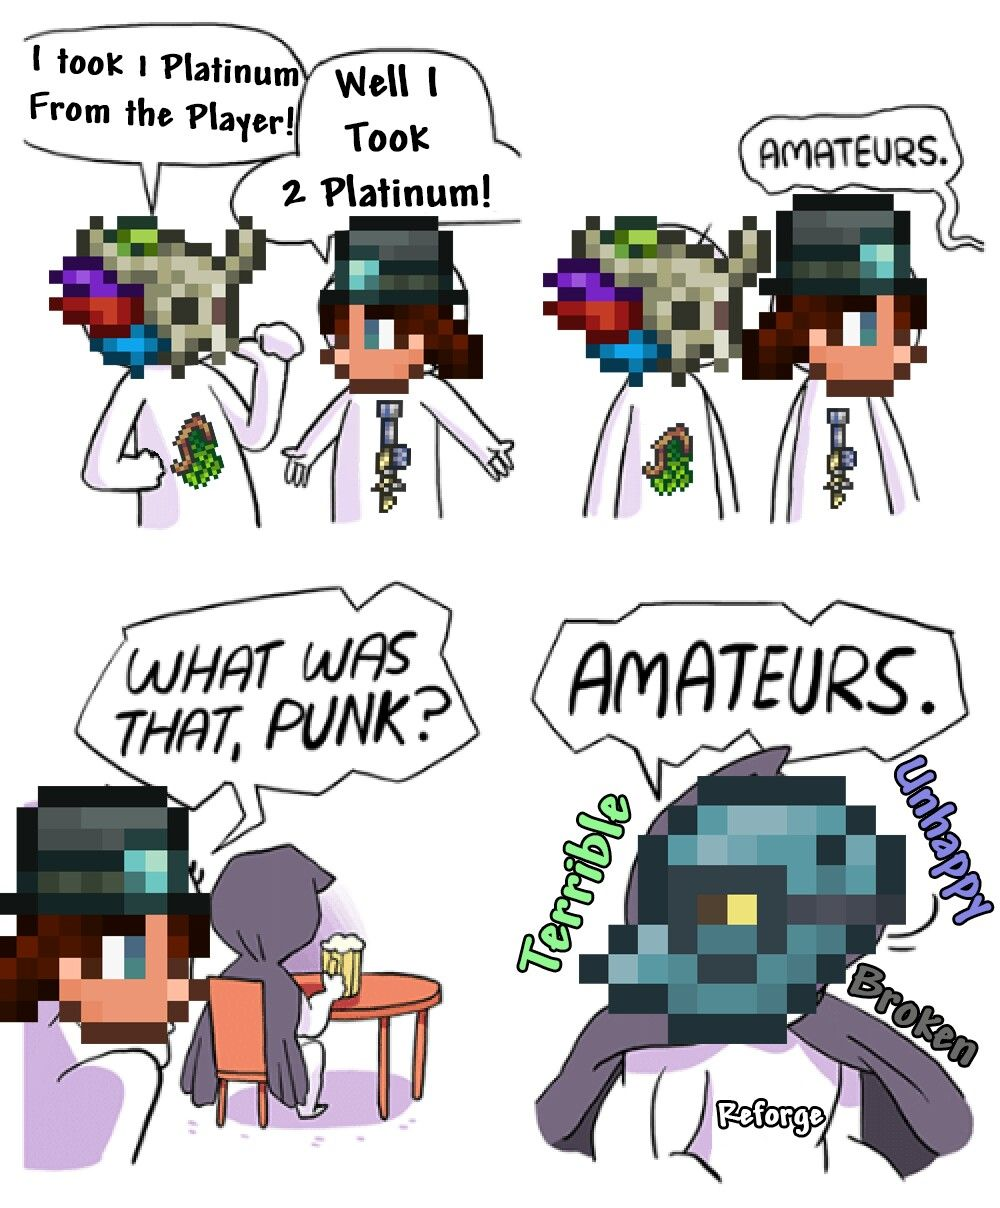 Pin By Fhjhxdfyh On Terraria Terraria Memes Funny Games Funny Memes